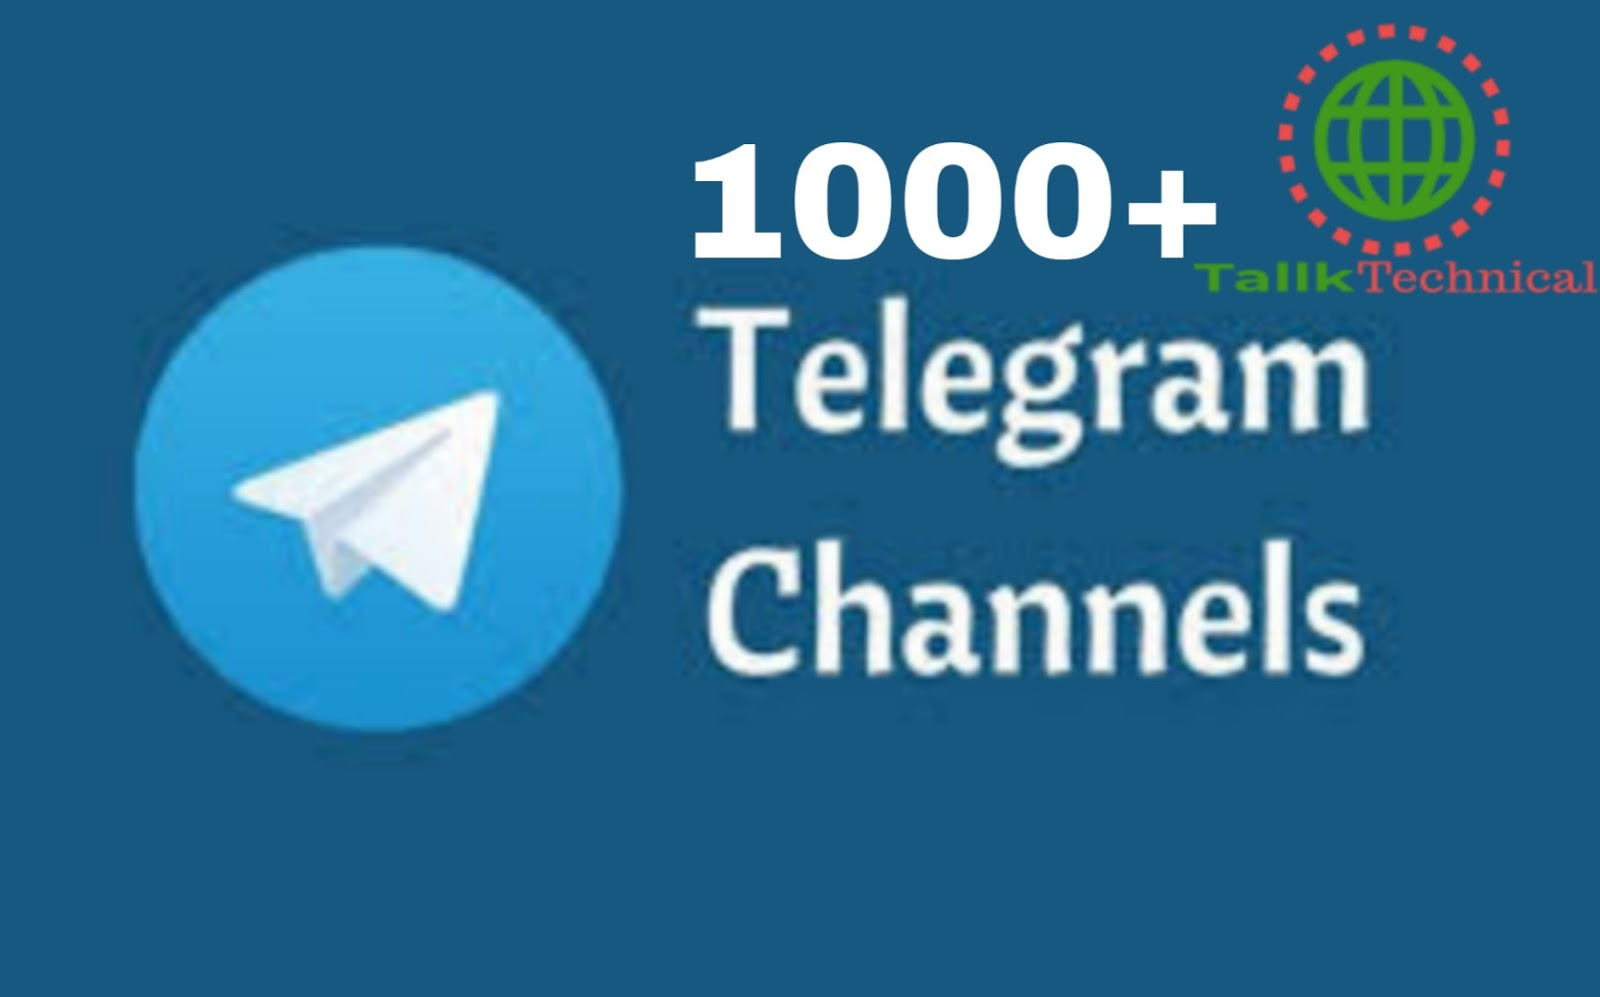 Telegram Group Links Latest 1000+, Tamil, Malayalam, 18+ India